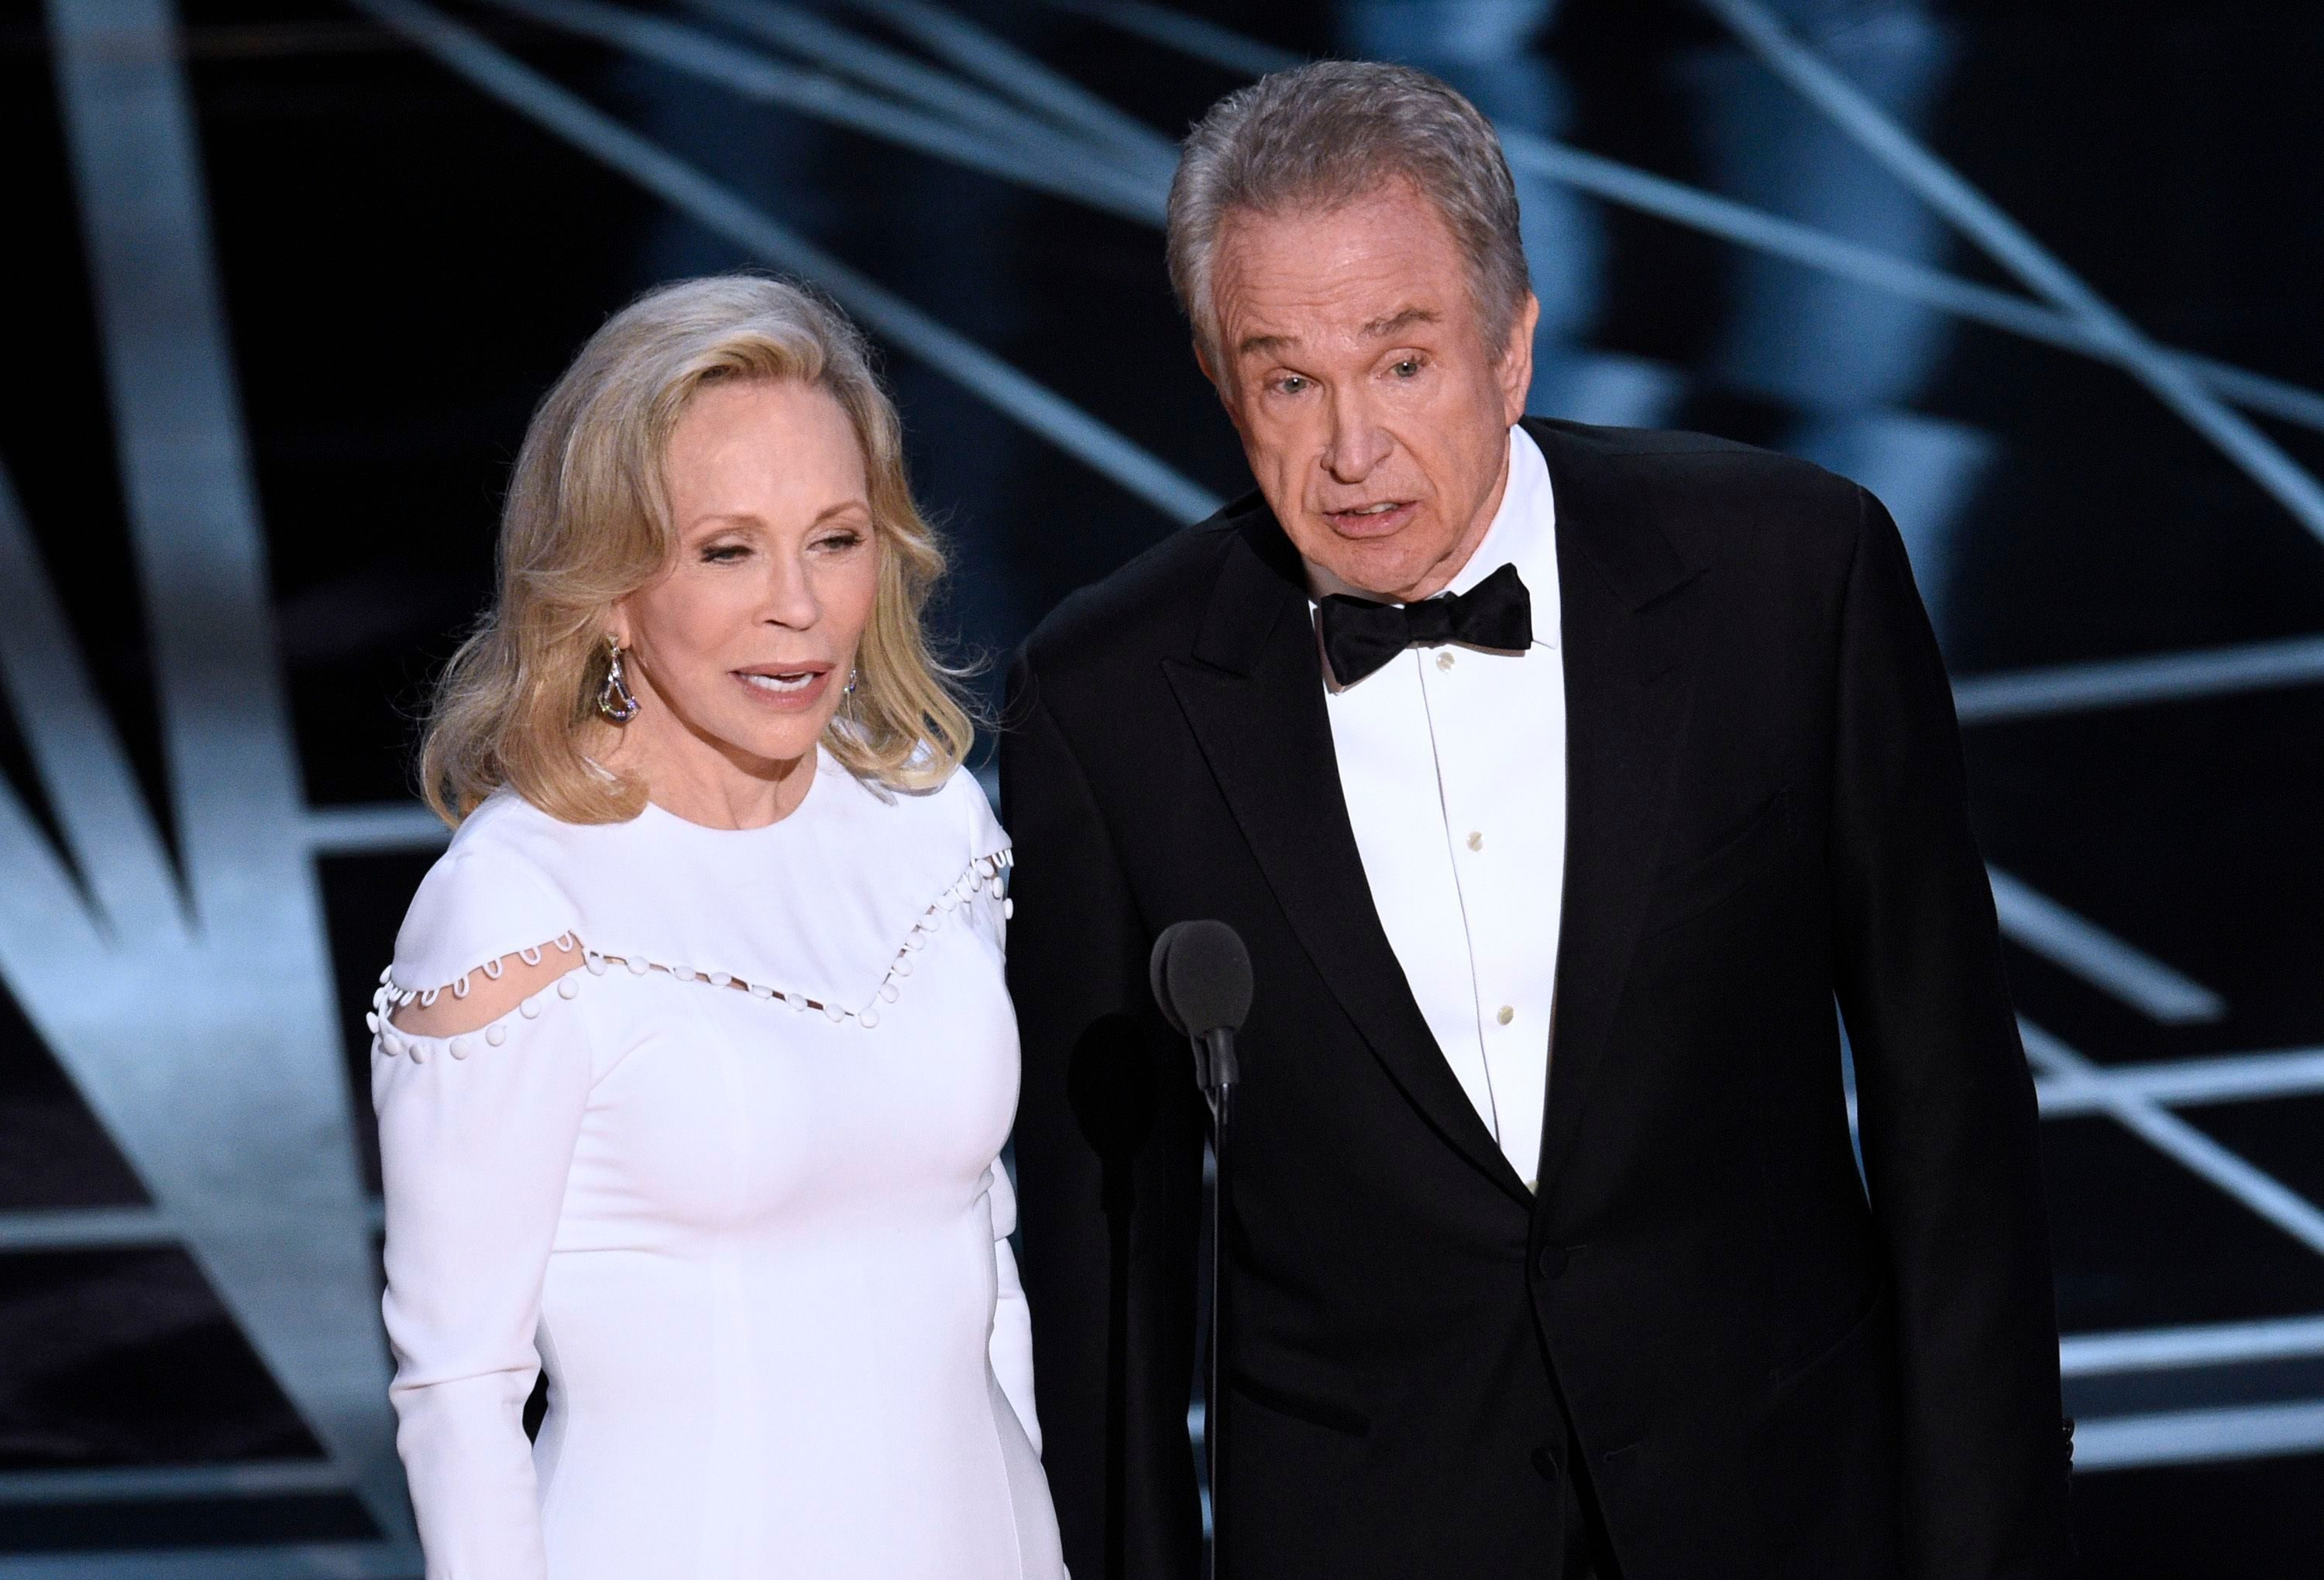 Mandatory Credit: Photo by Invision/AP/Shutterstock (9241604de) Faye Dunaway, left, and Warren Beatty present the award for best picture at the Oscars, at the Dolby Theatre in Los Angeles 89th Academy Awards - Show, Los Angeles, USA - 26 Feb 2017